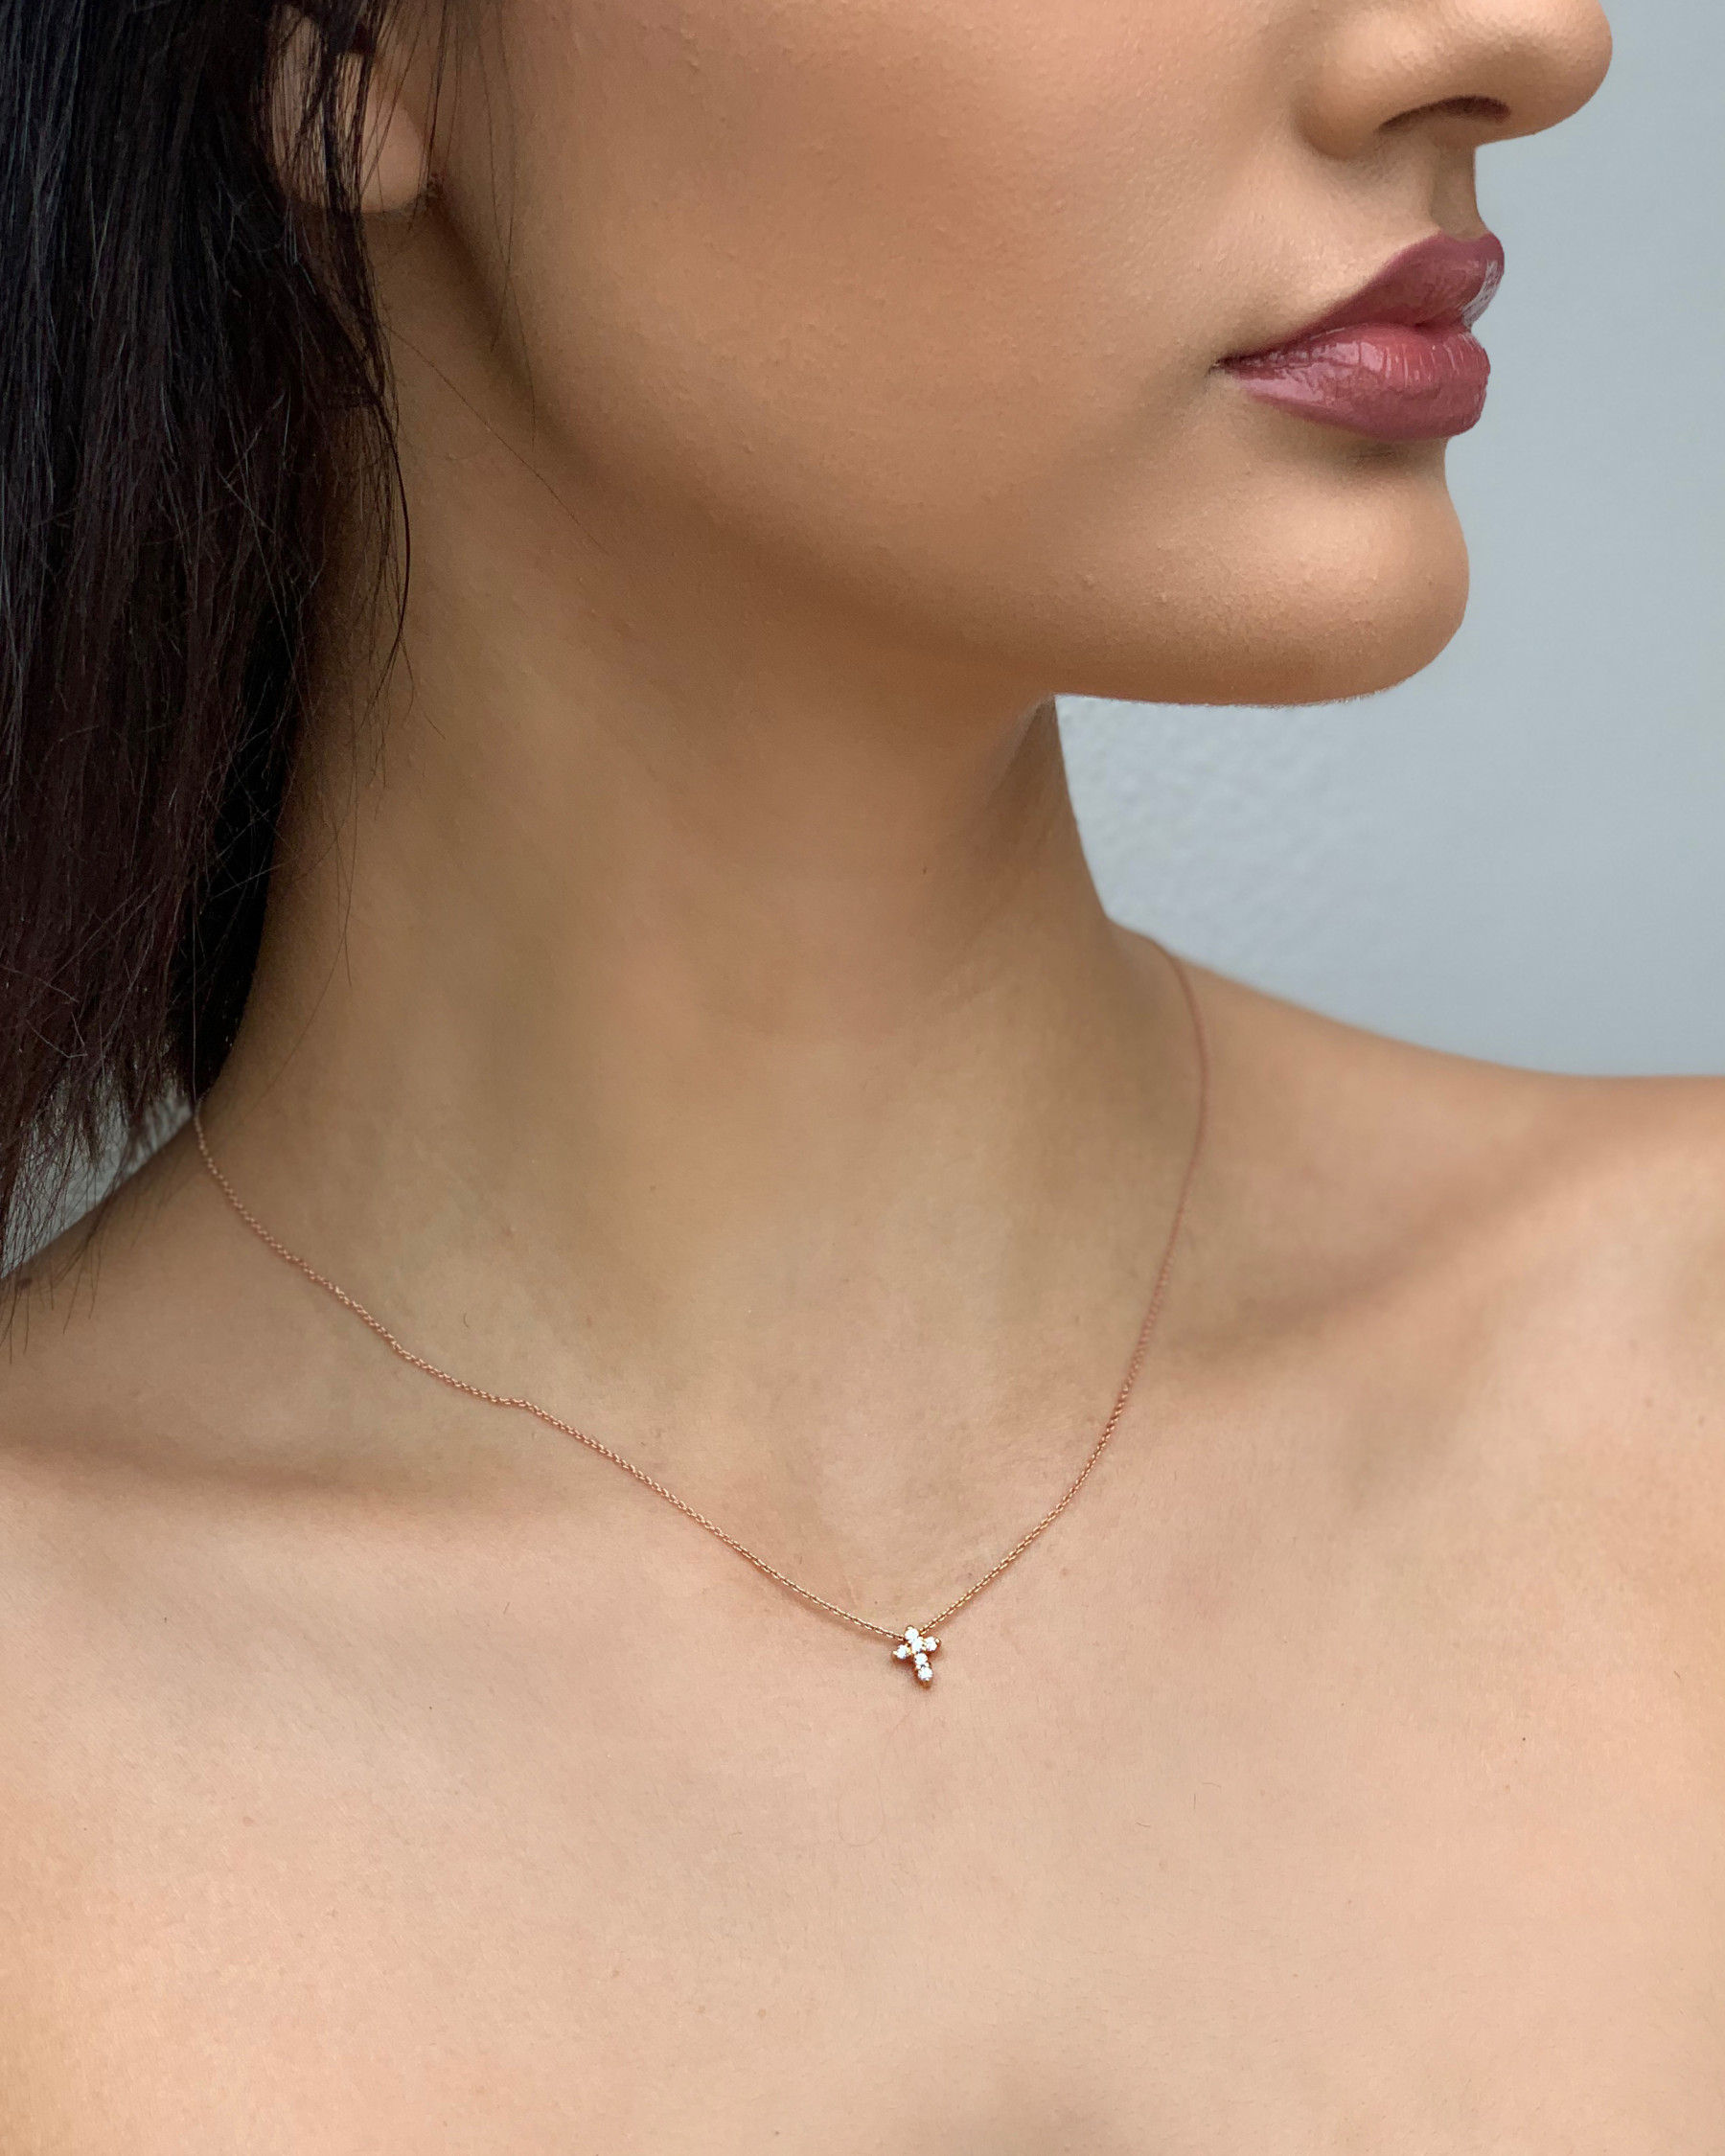 Roberto Coin Baby Cross Necklace in 18k Rose Gold on Model